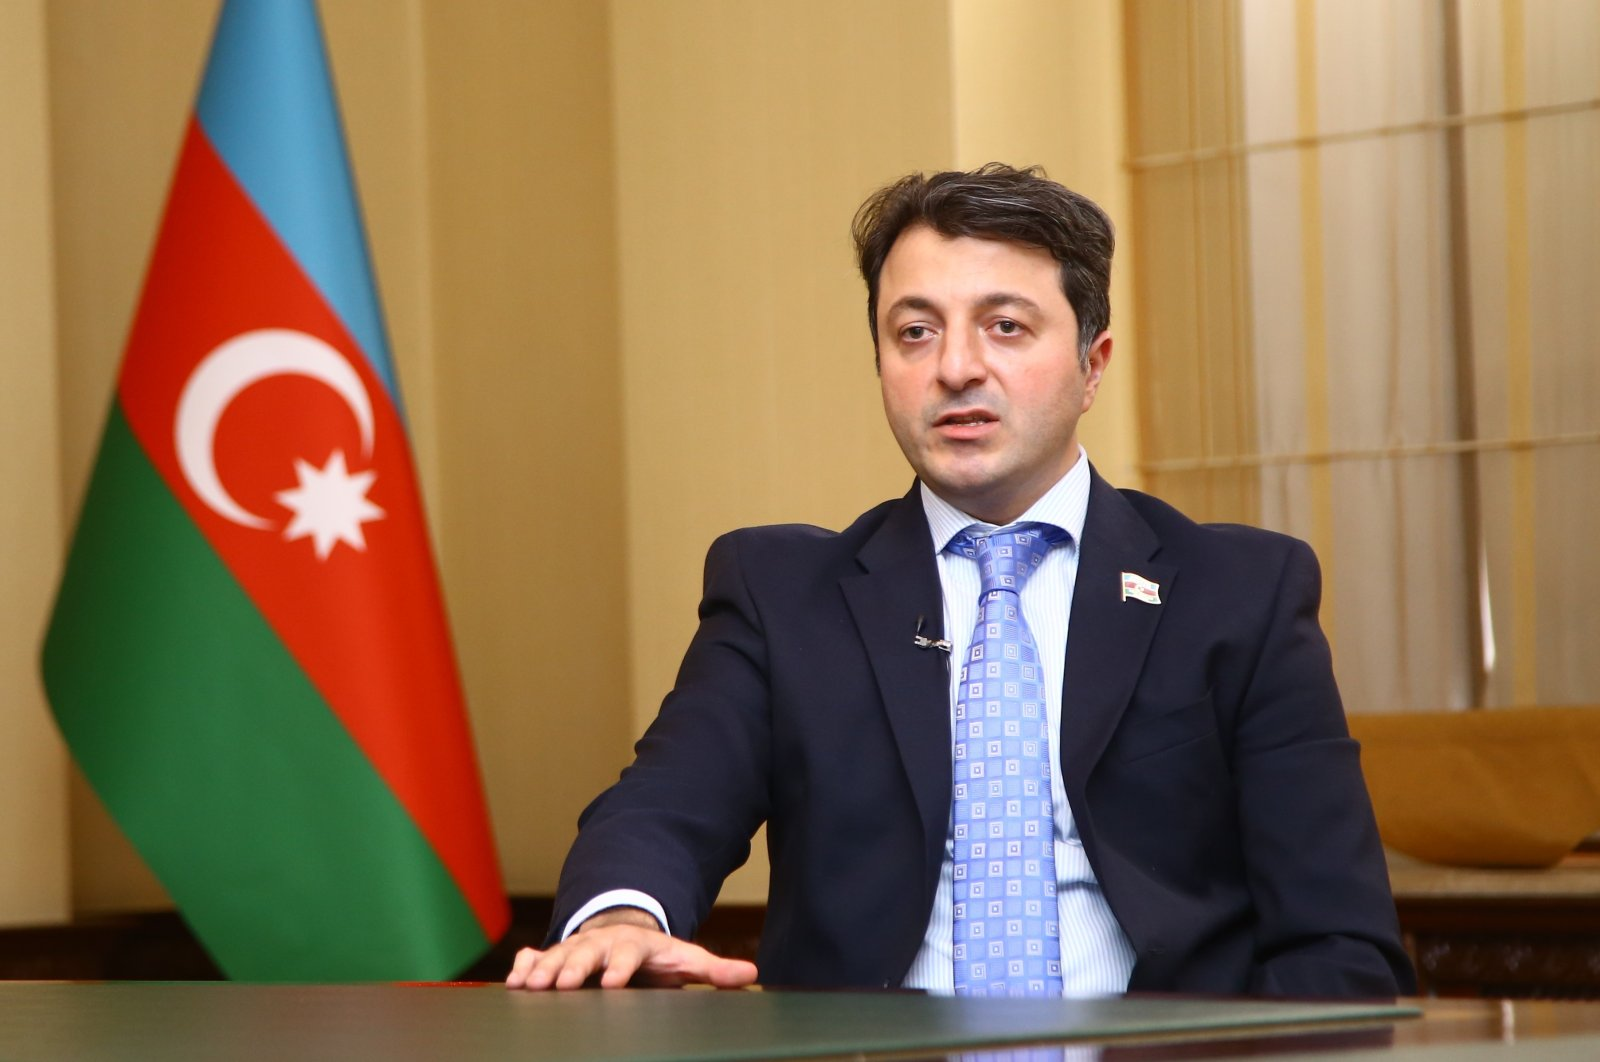 Tural Ganjaliyev, head of the Azerbaijani community of the Nagorno-Karabakh region, speaks in an interview with Anadolu Agency (AA), Oct. 9, 2020. (AA Photo)